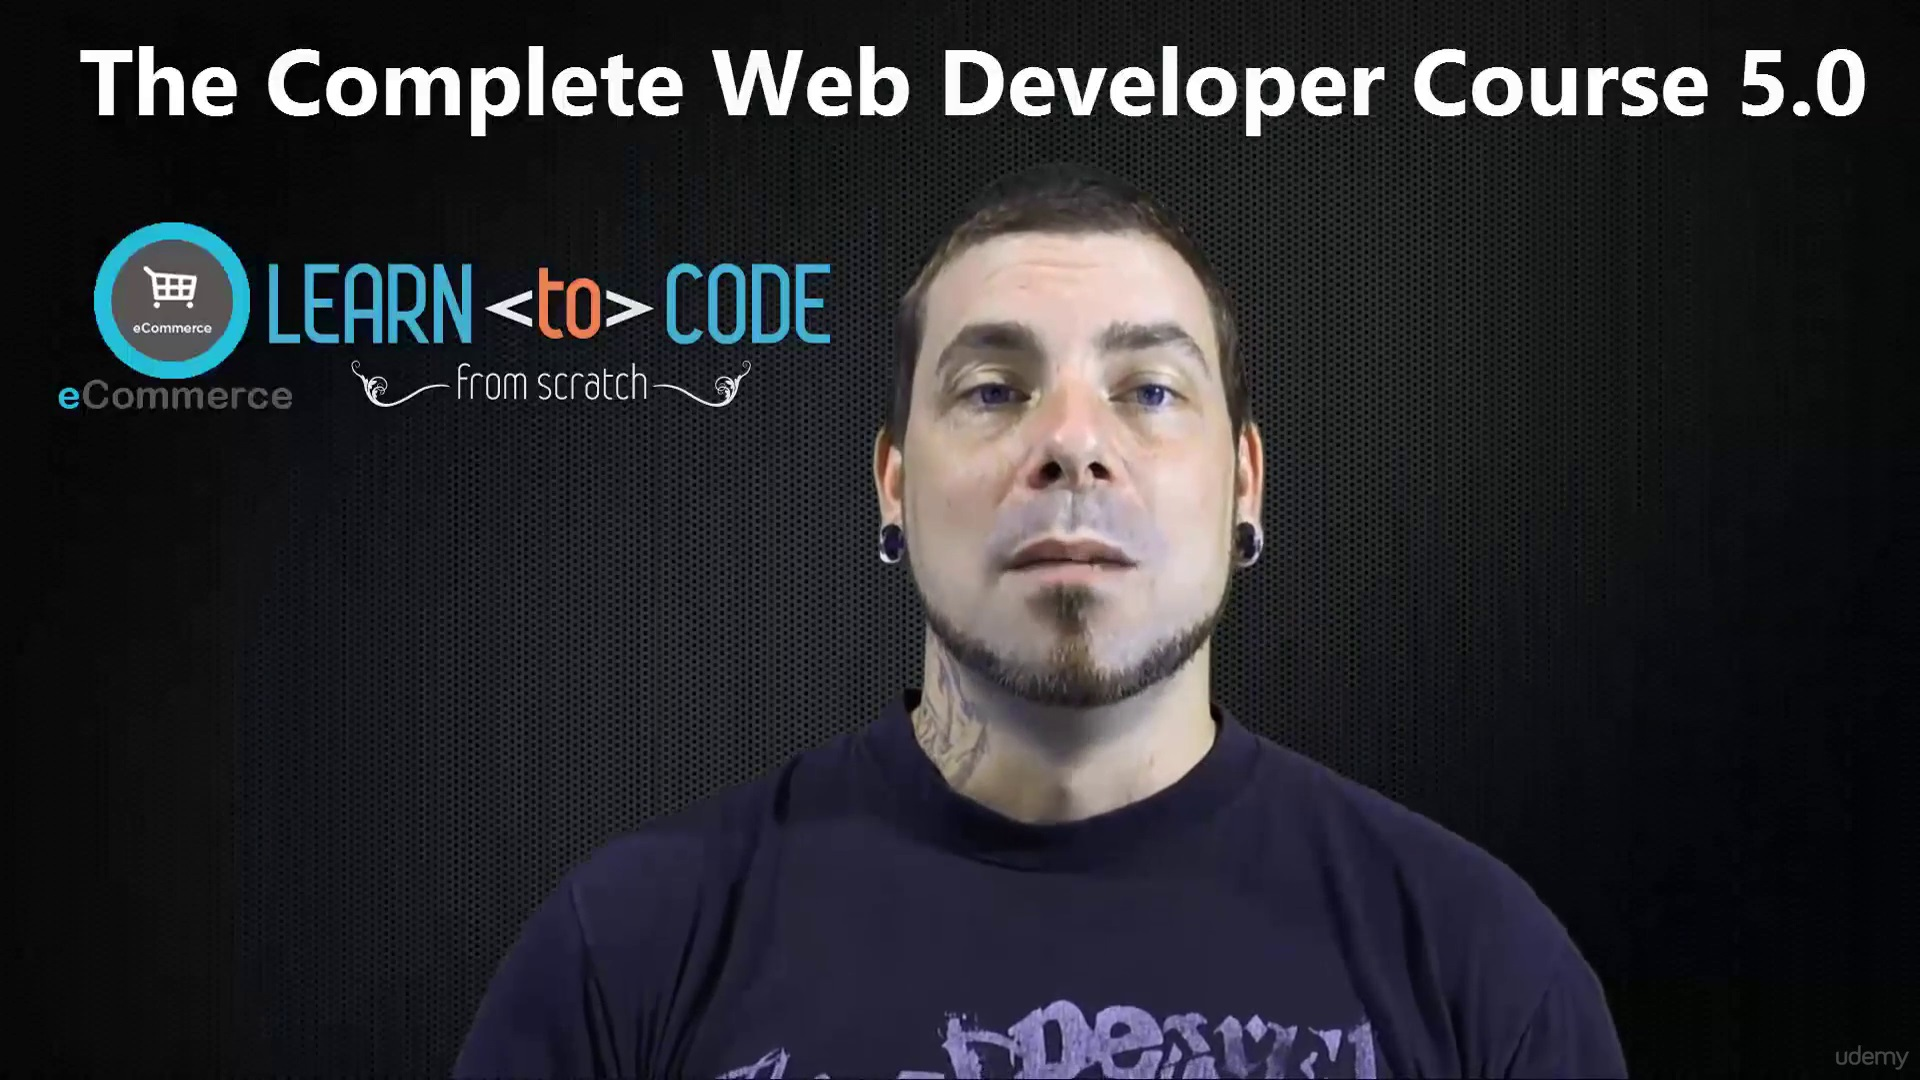 The Complete E-Commerce Web Developer Course 5.0 (2016)